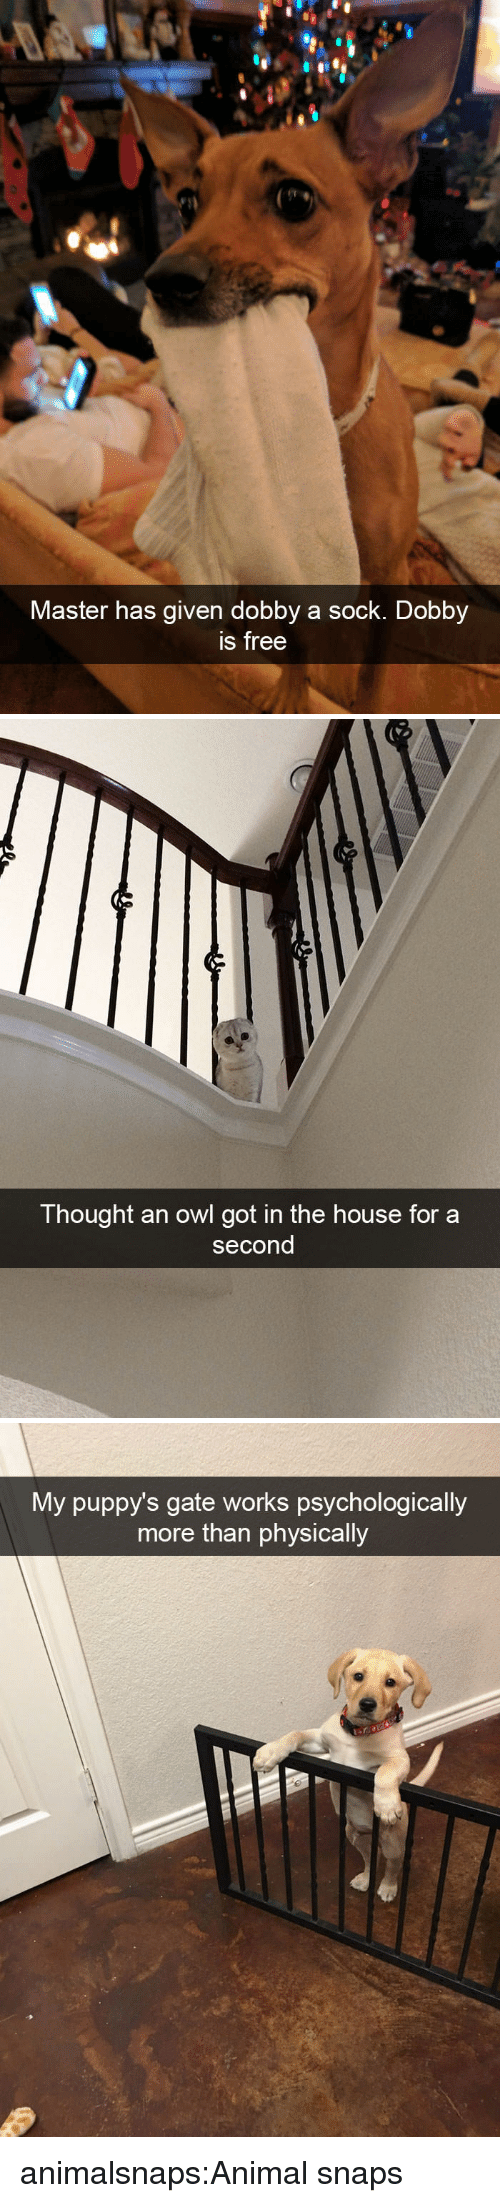 Target, Tumblr, and Animal: Master has given dobby a sock. Dobby  s free   Thought an owl got in the house for a  second   My puppy's gate works psychologically  more than physically animalsnaps:Animal snaps